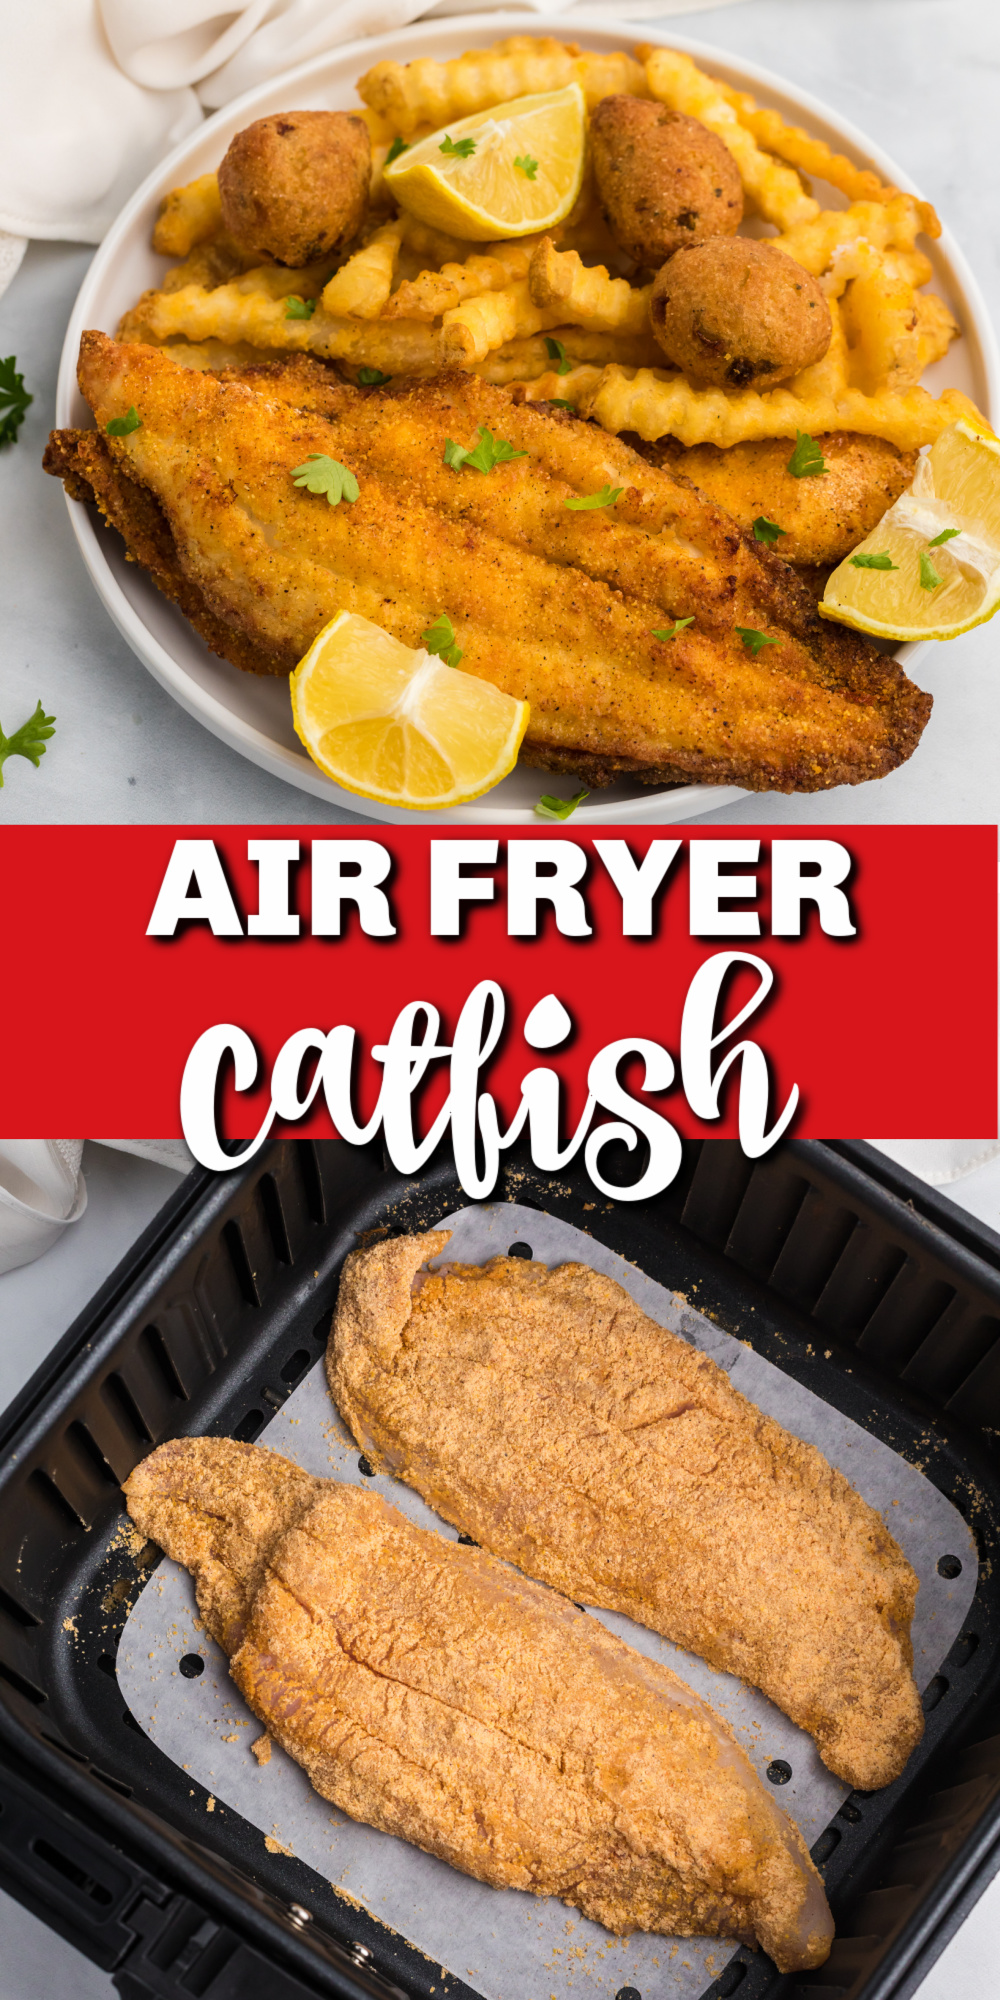 Air Fryer Catfish is made with just a few ingredients and is crazy delicious! It's quick, easy, delicious, and crispy! You'll love that it's super fast and not deep fried. It's an easy Air Fryer dinner recipe.